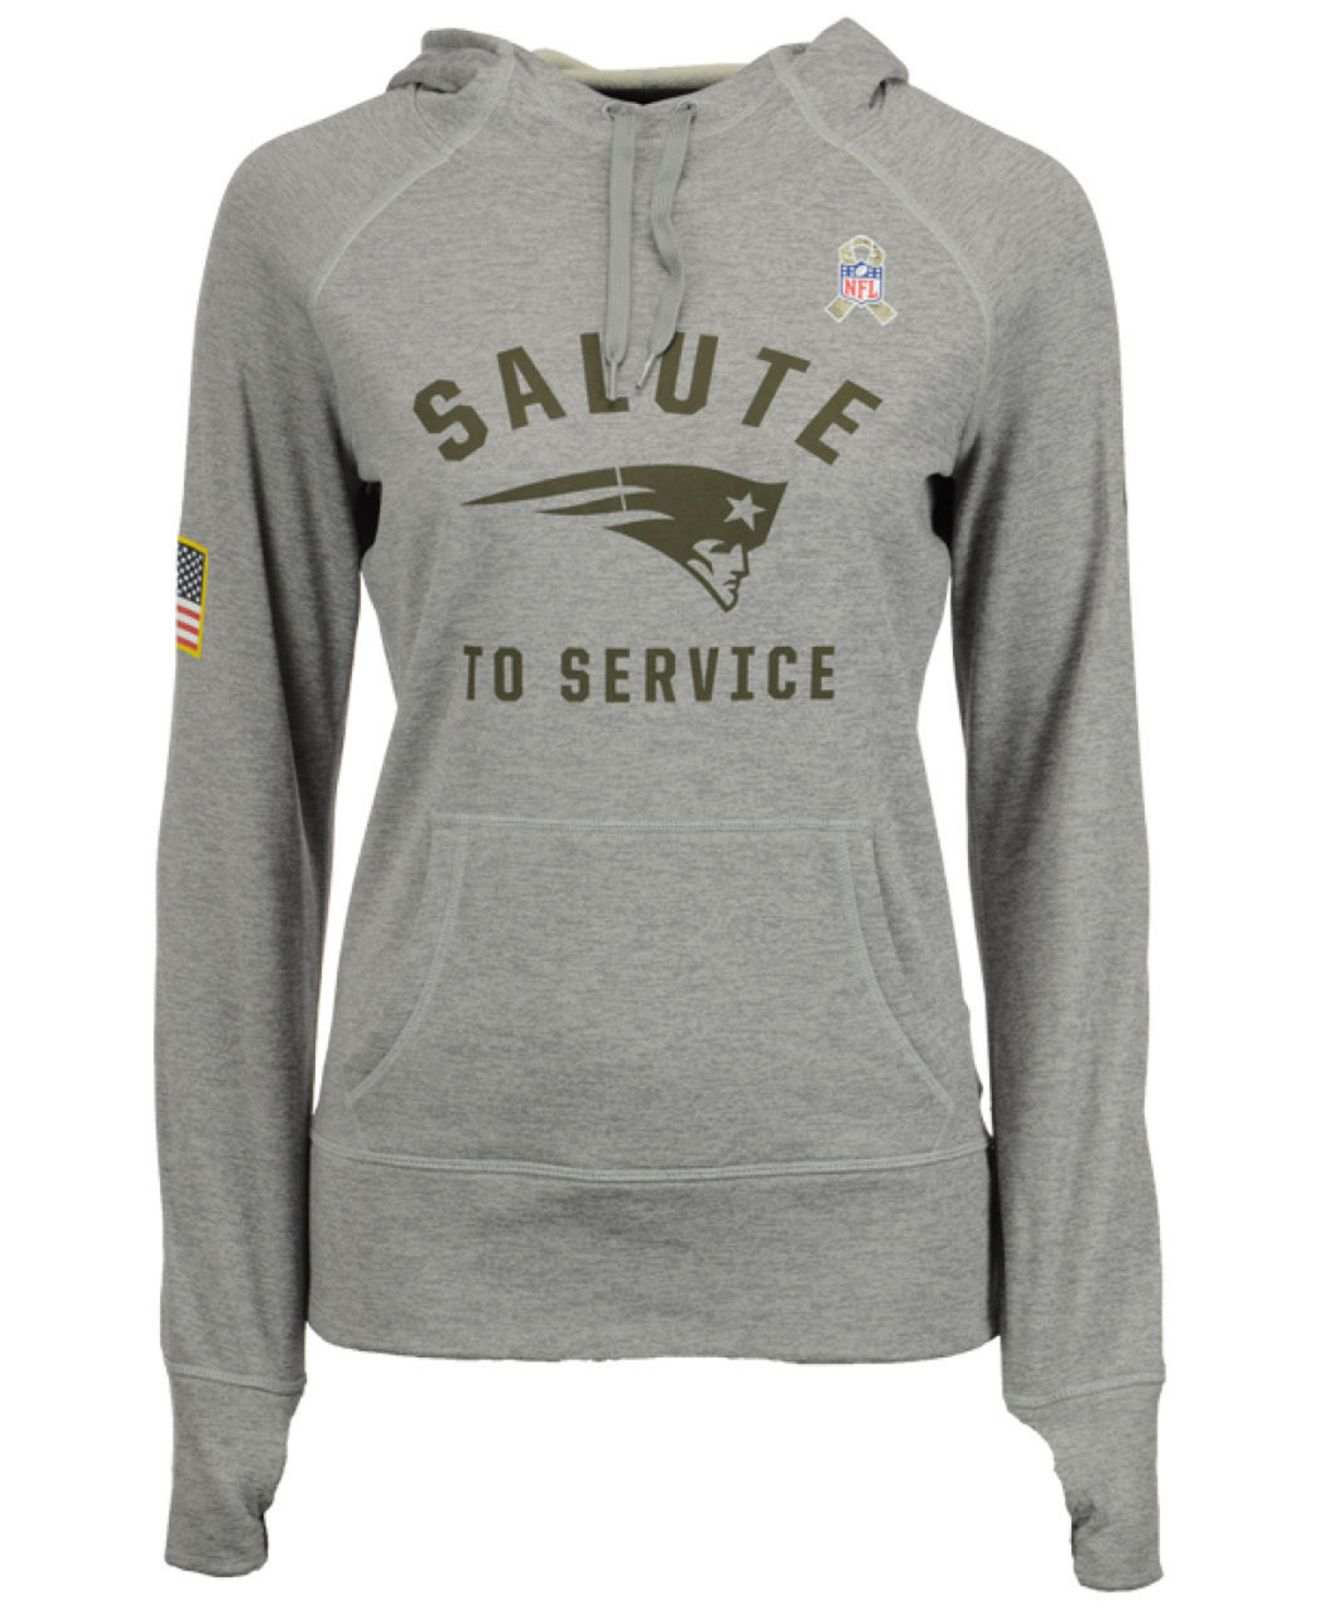 2145d0d41b230e Nike Women's New England Patriots Salute To Service Hoodie in Gray ...